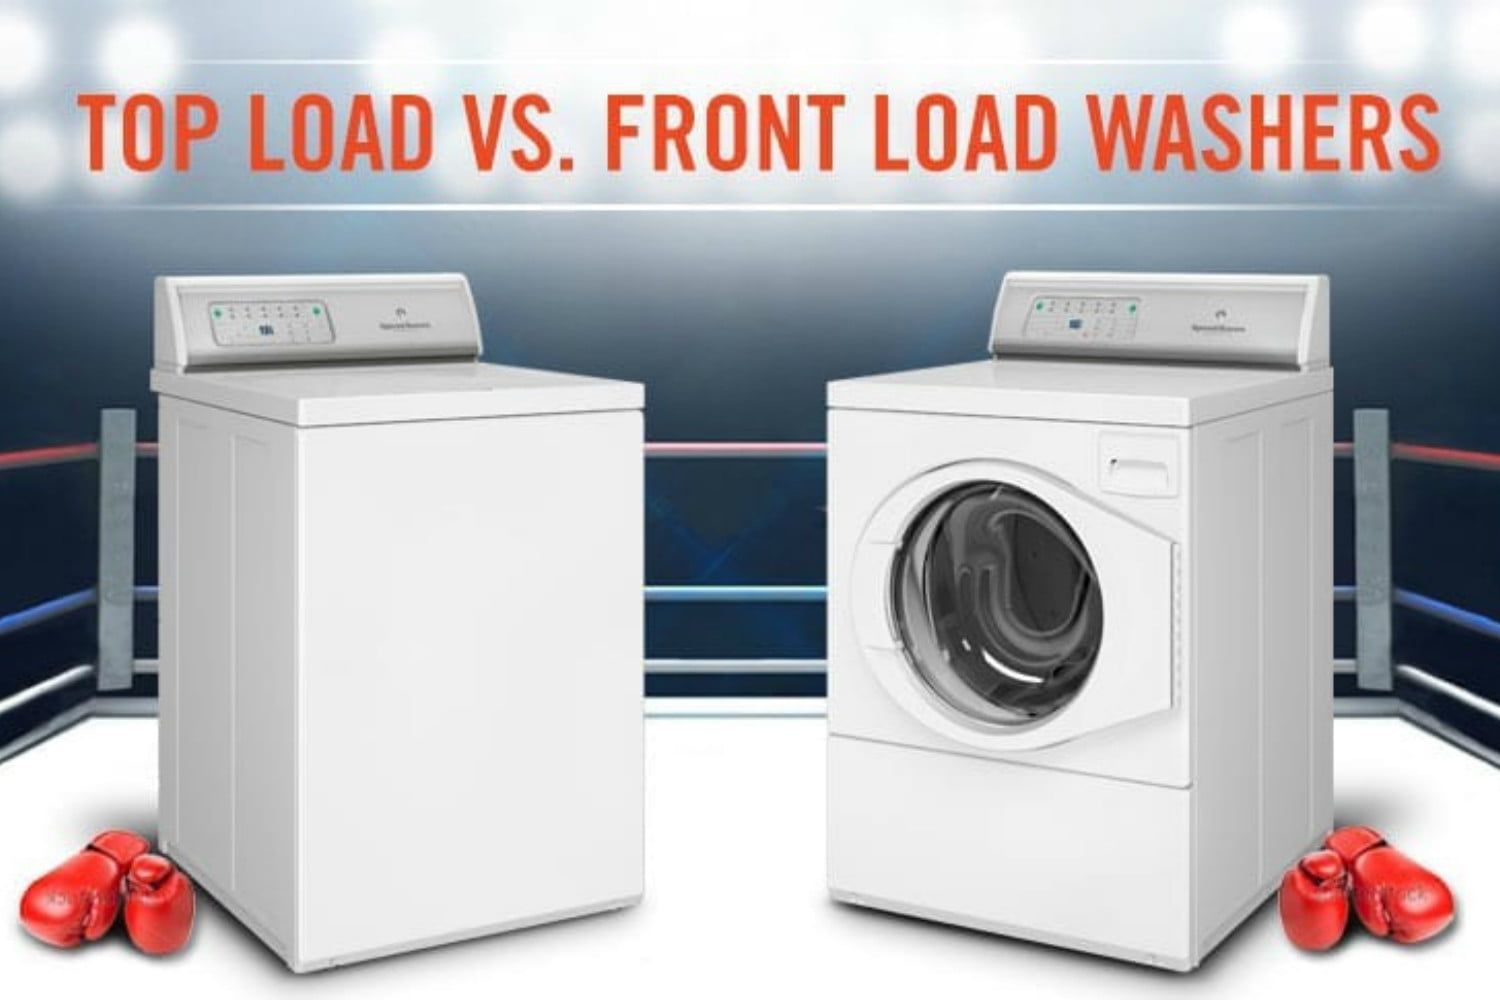 Top load vs. front load washers in boxing ring